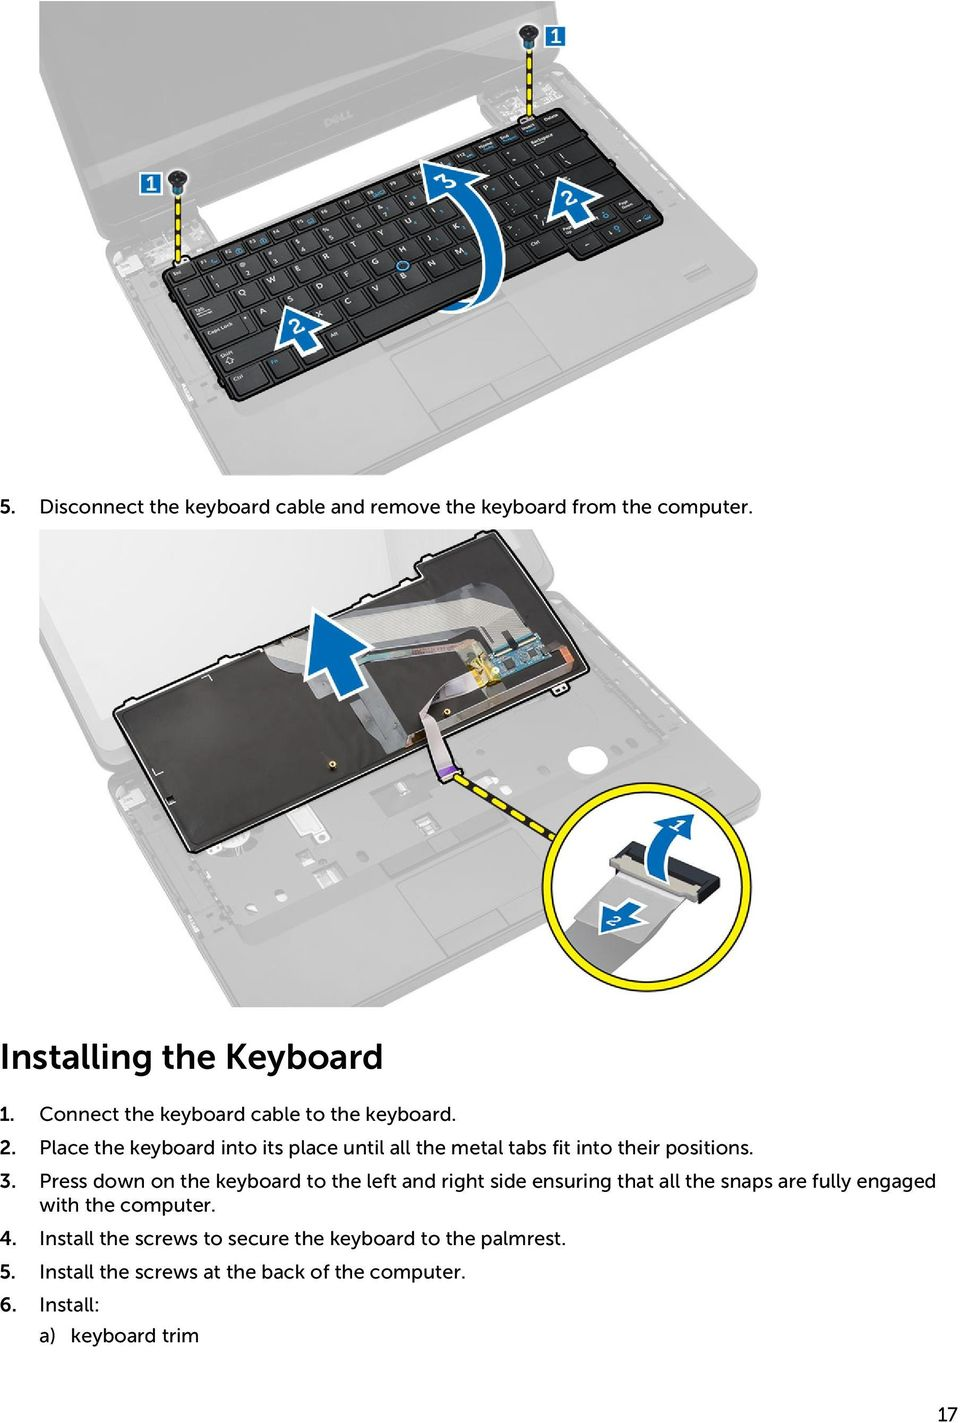 Place the keyboard into its place until all the metal tabs fit into their positions. 3.